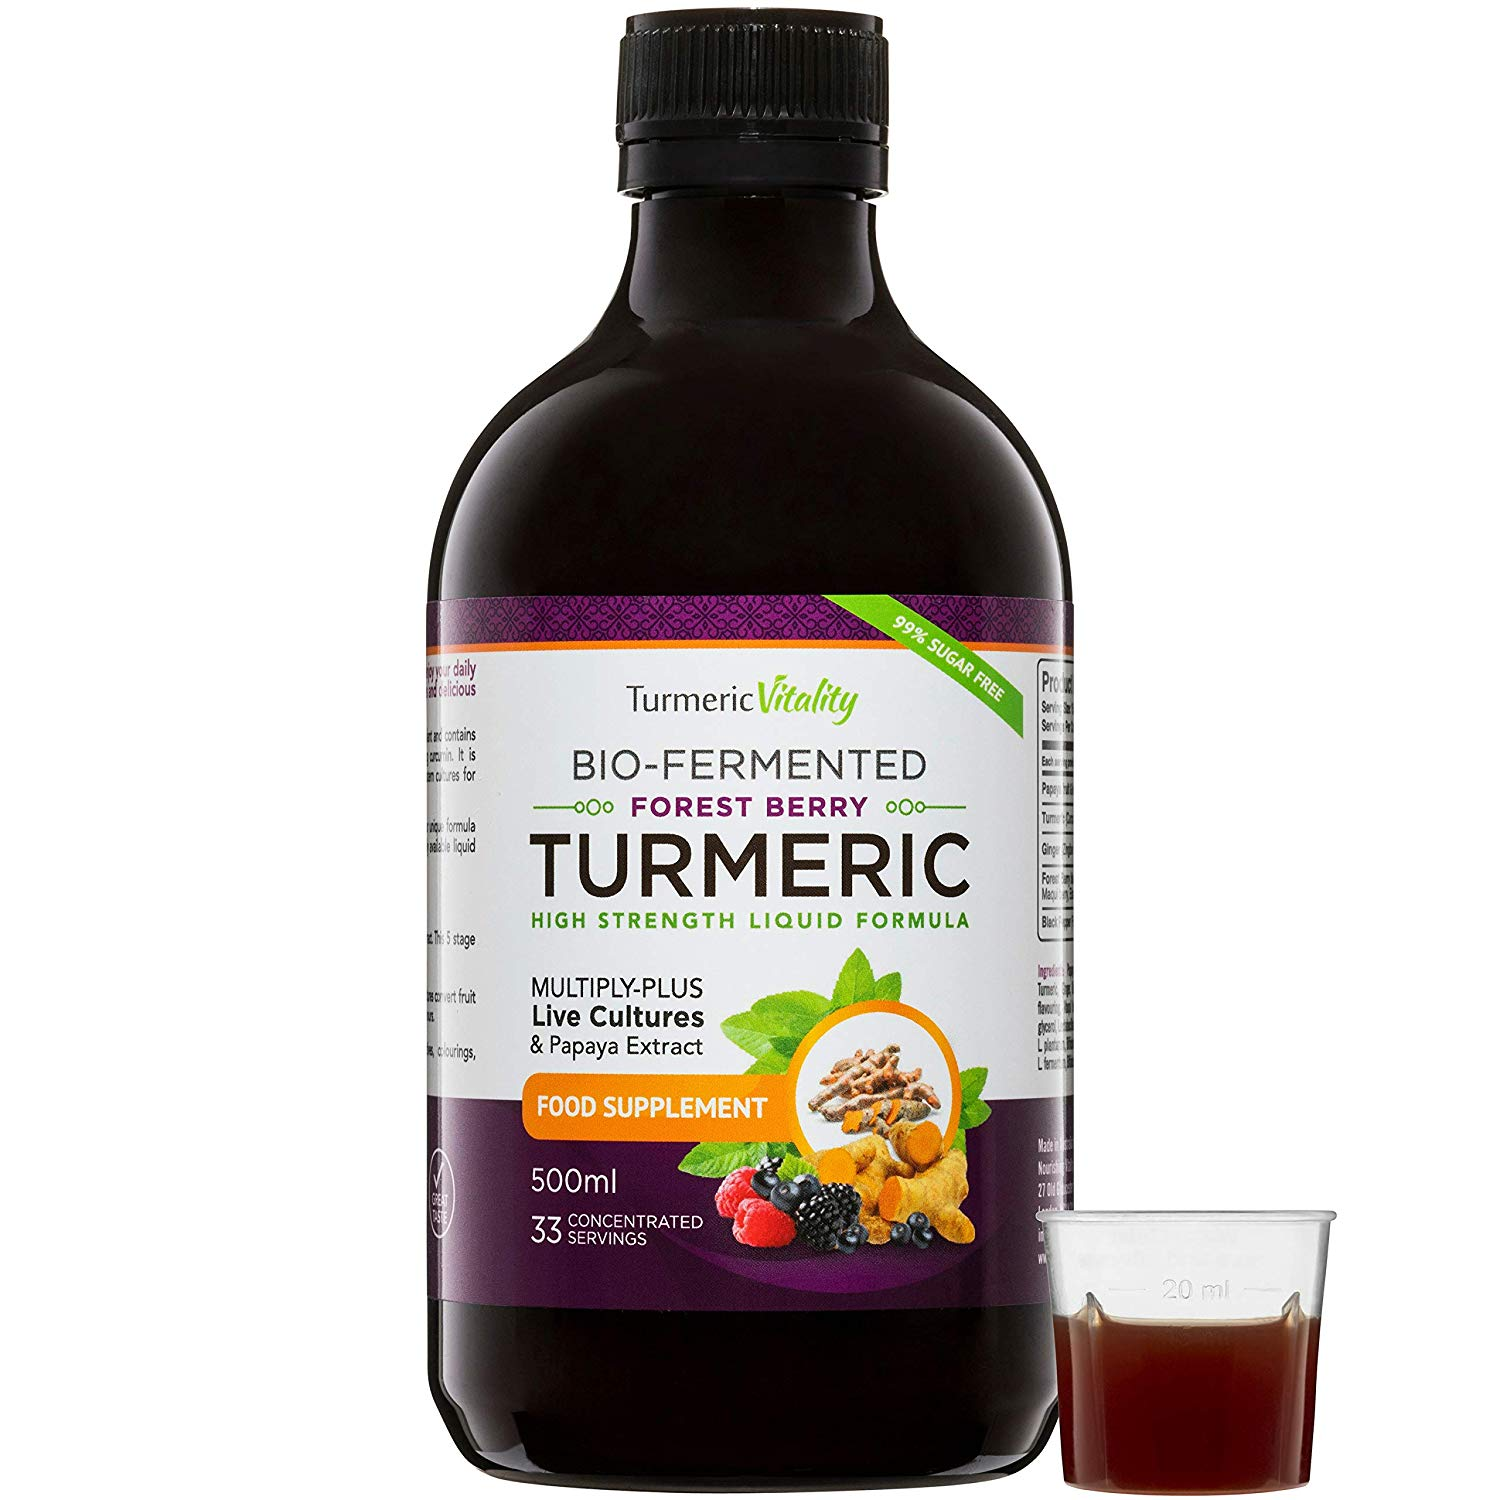 New Bio-Fermented Turmeric Supplement!